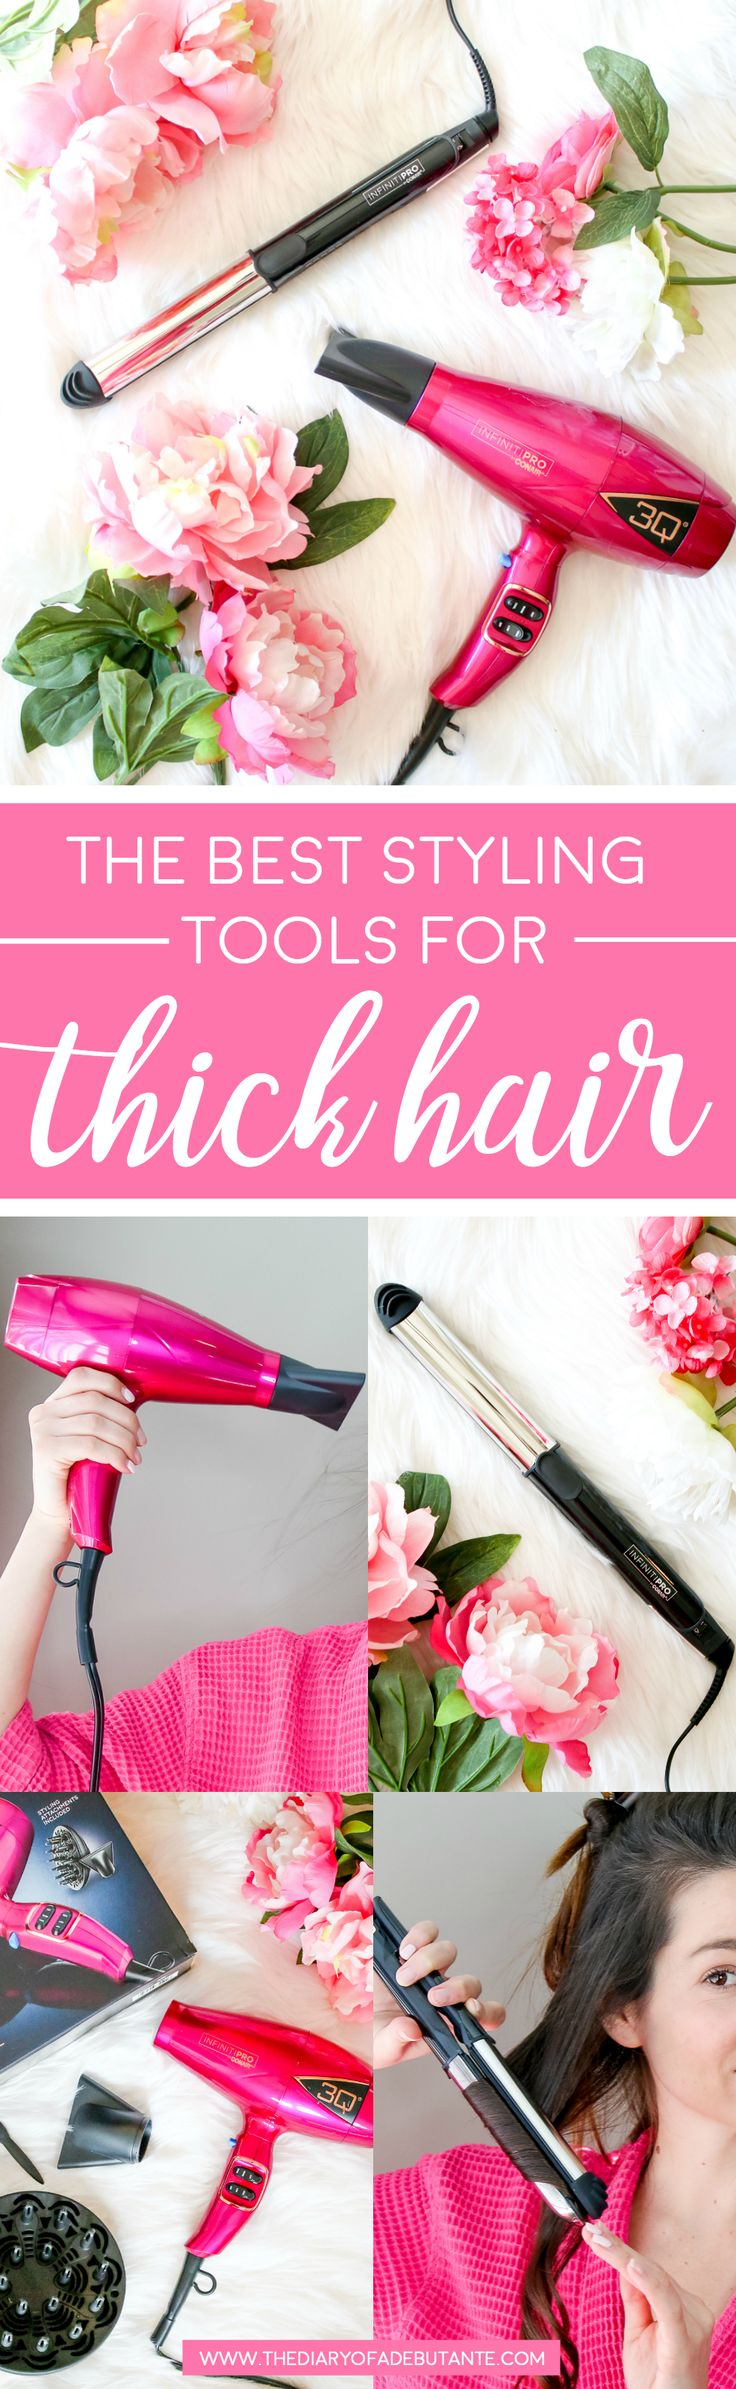 Conair 3Q blow dryer and Conair 2-in-1 styler review | How to use the InfinitiPRO by Conair 2-in-1 Styler | How to use the InfinitiPRO by Conair 3Q Compact Styler | The best blow dryer for thick coarse hair and best 2-in-1 styler from Conair | Conair's best hair styling tools for women | The Countdown to Styling: 2 Conair Styling tools Every Girl Needs to Try by blogger and retired beauty queen Stephanie Ziajka from Diary of a Debutante #3QDryer #Conair2in1Styler #sponsored